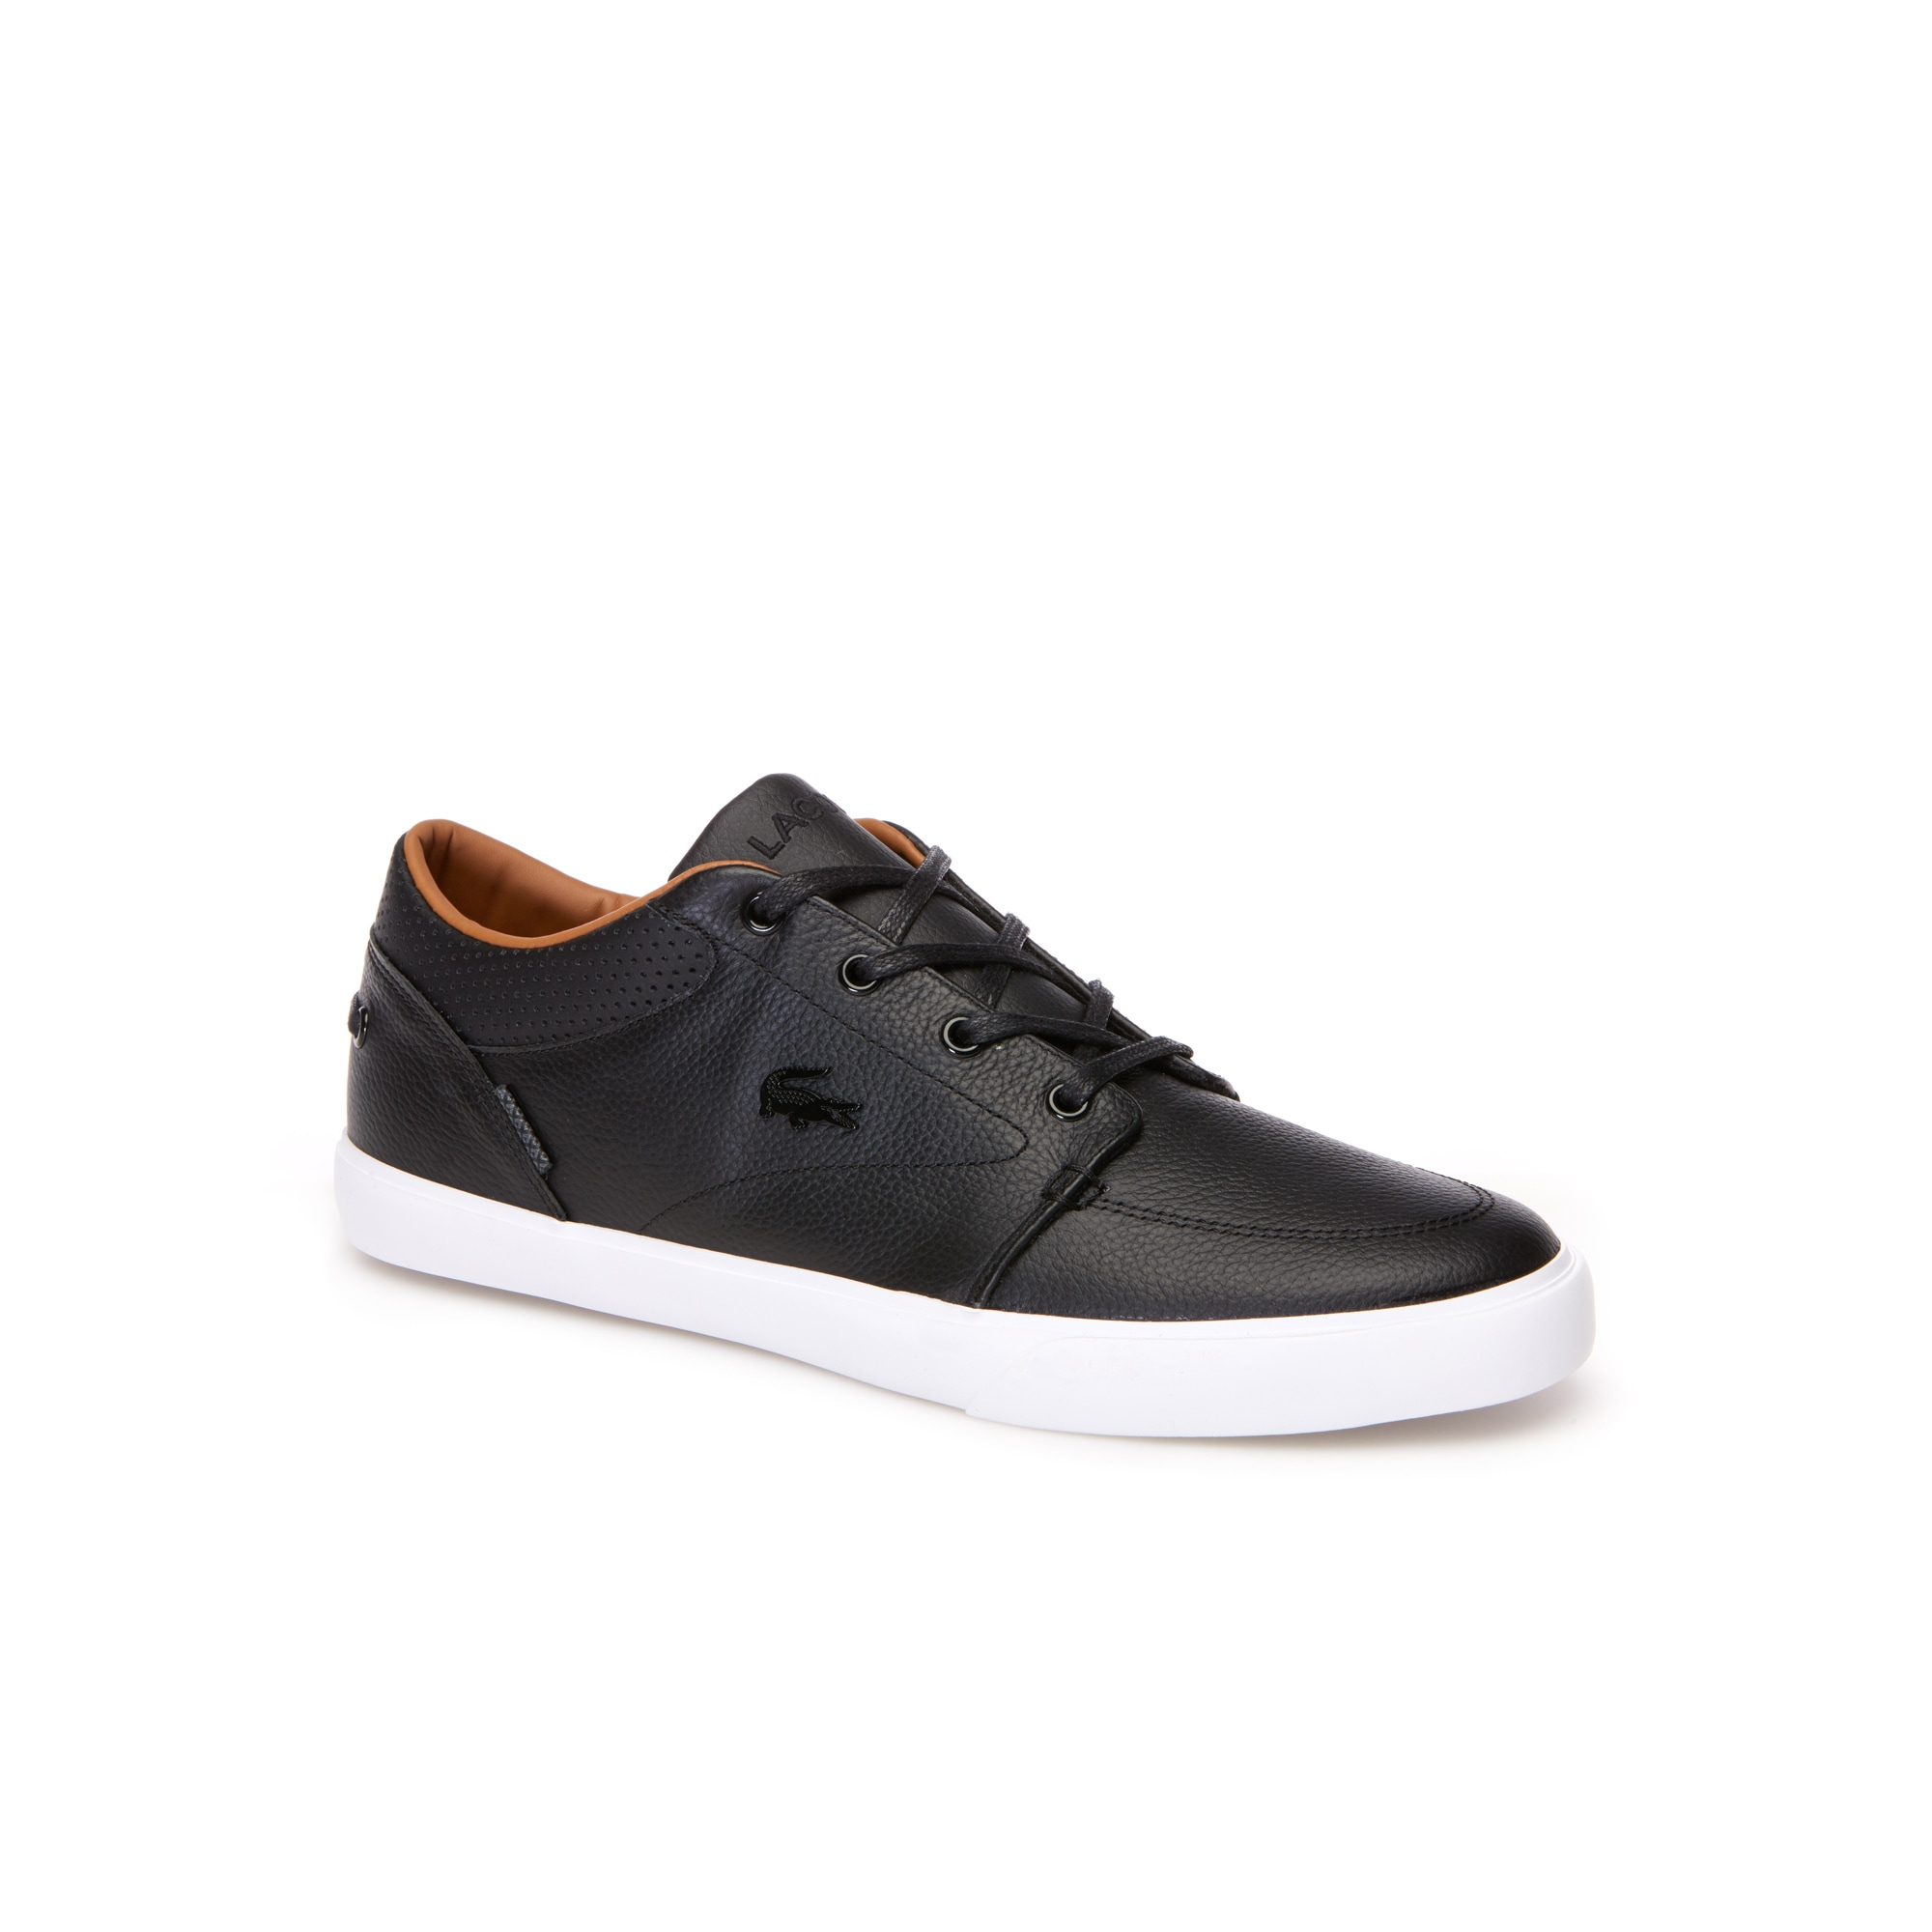 Sneakers basse con stringhe Bayliss VULC in pelle